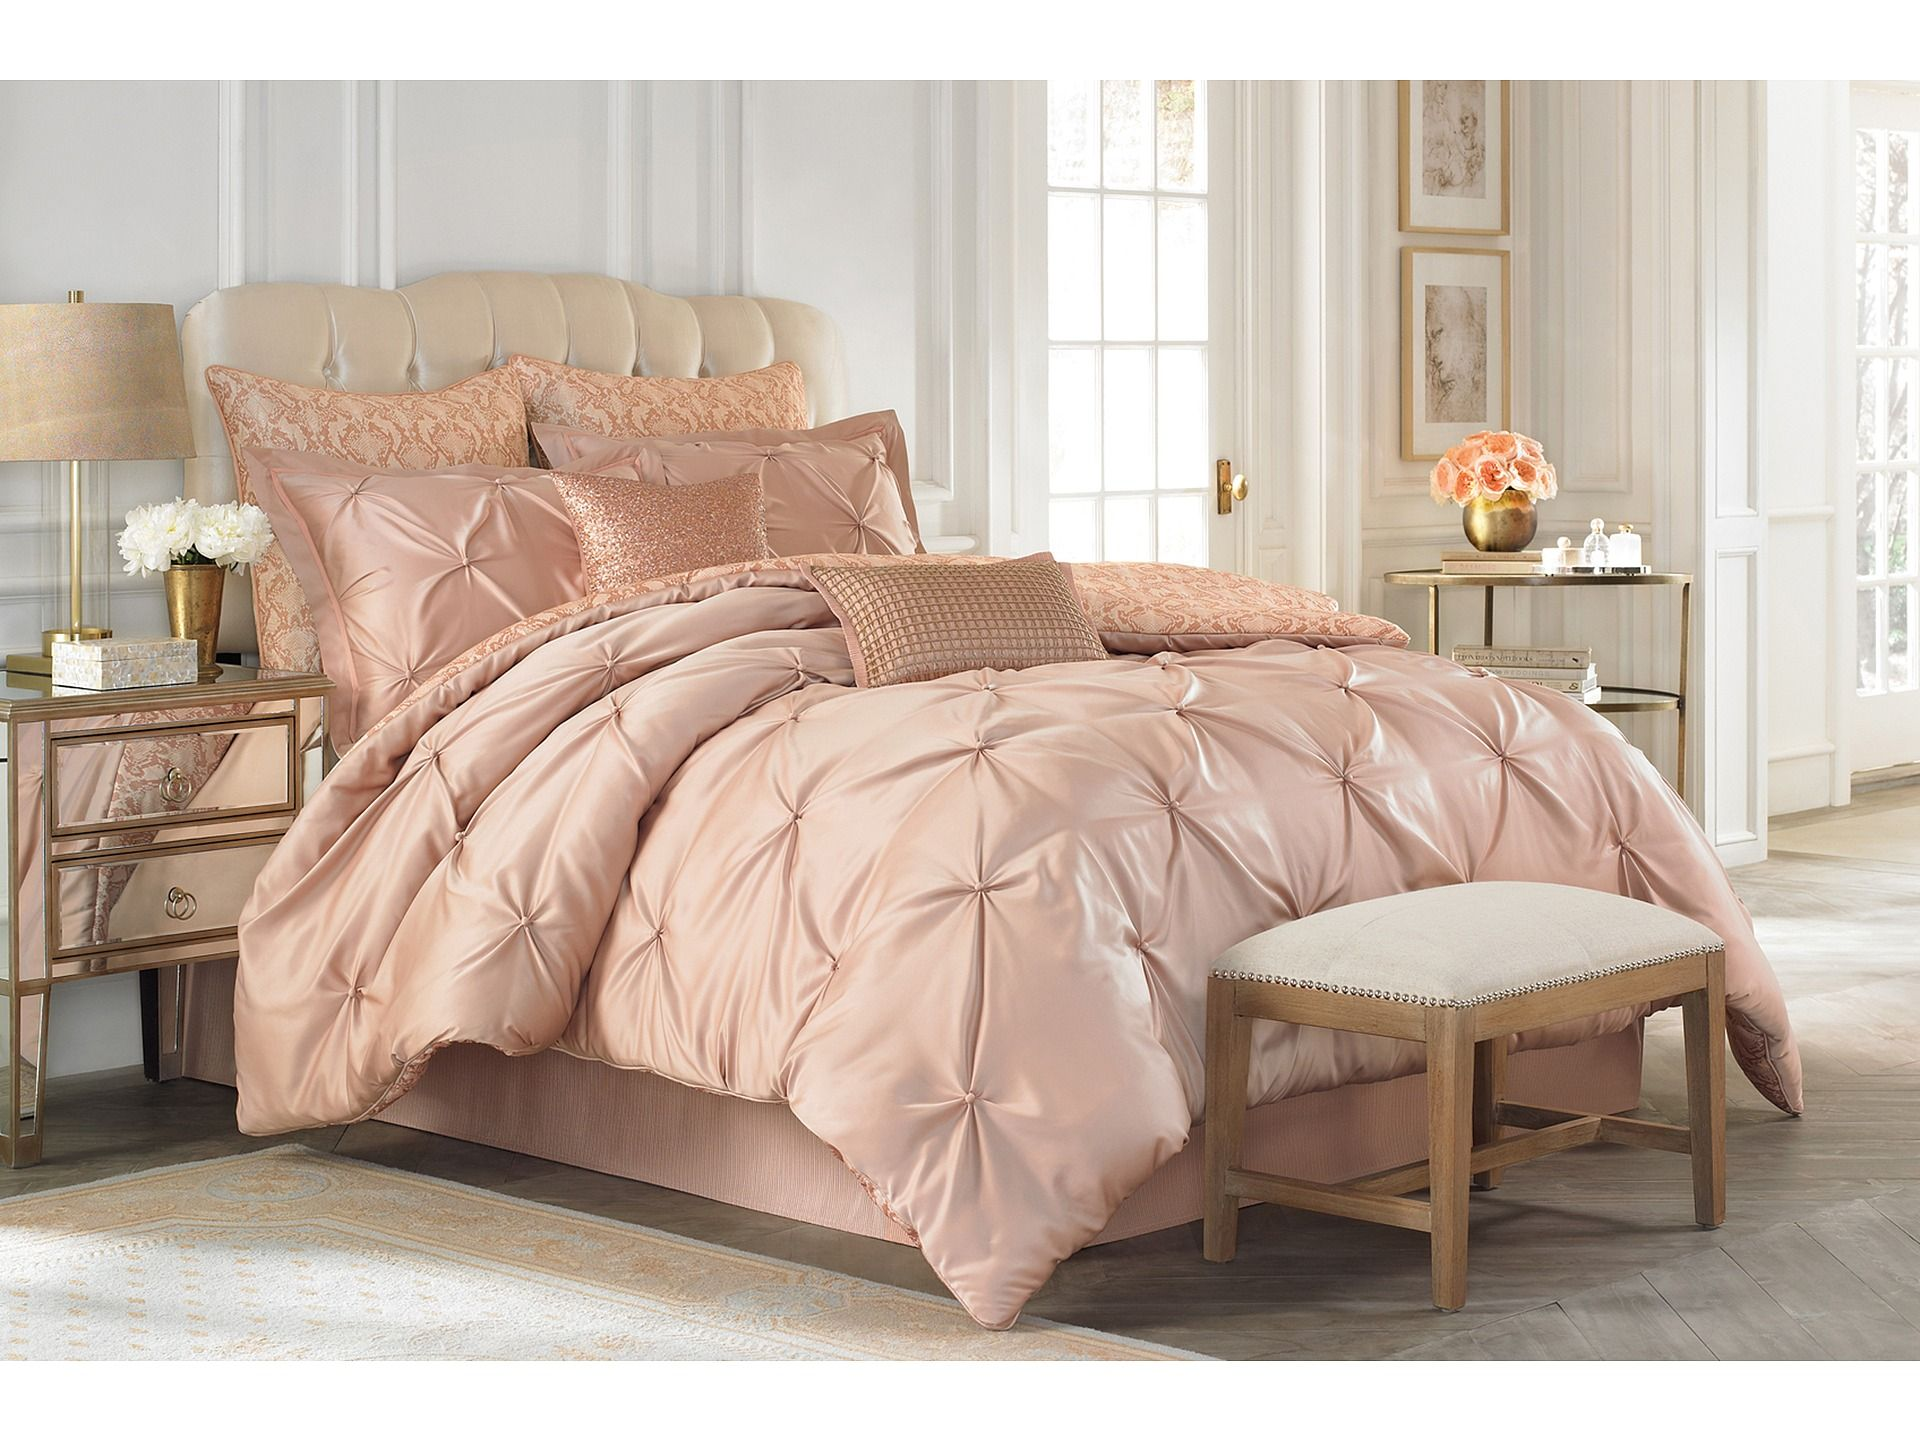 Vince Camuto Rose Gold Comforter Set Great For A Girly Bed But I Wouldn T Make My Husband Sleep Rose Gold Bedroom Decor Rose Gold Bedroom Gold Bedroom Decor